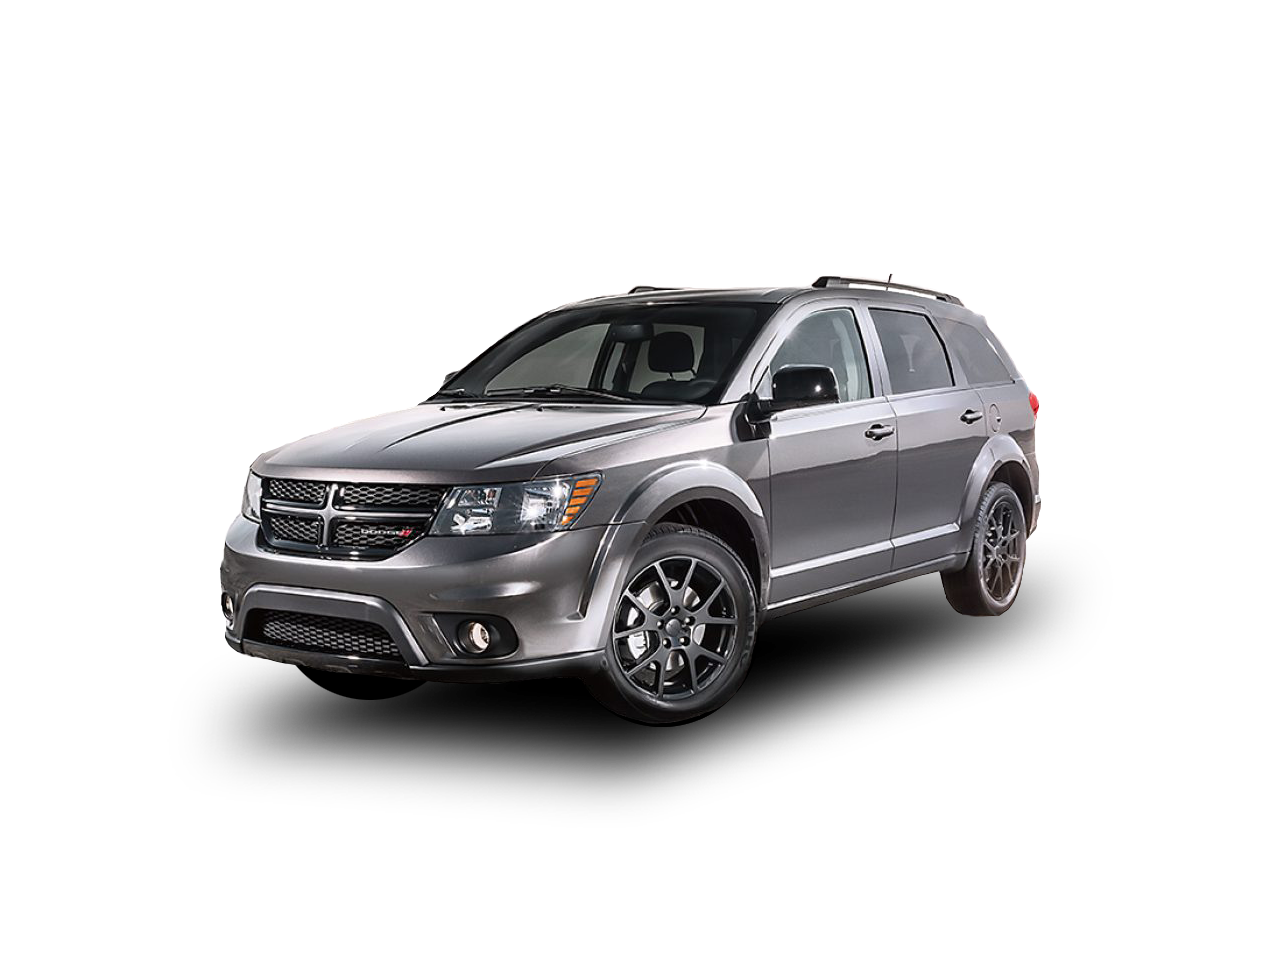 Test Drive A 2017 Dodge Journey at Turnersville Jeep Chrysler Dodge & Ram in Turnersville